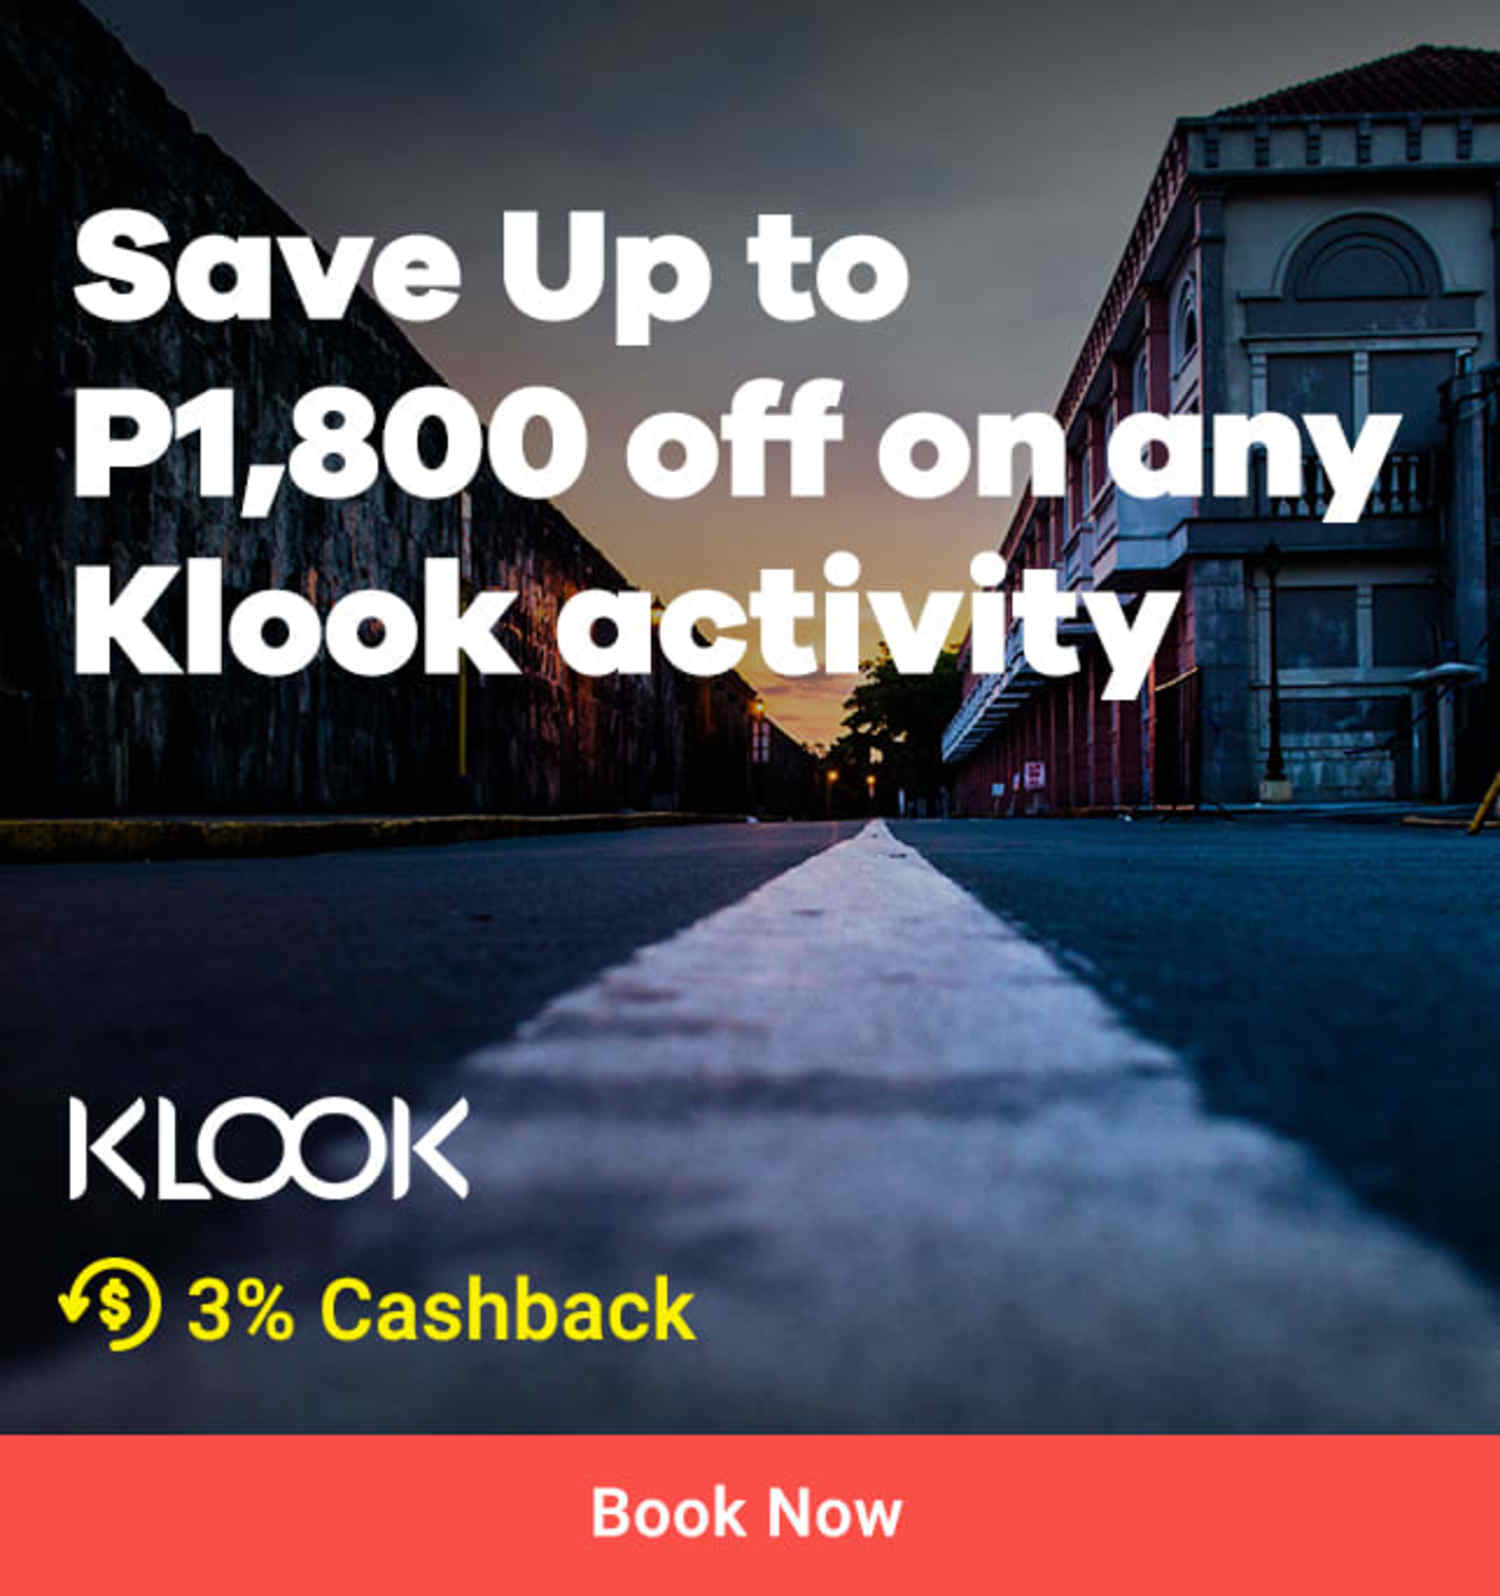 Klook Save Up to P1,800 off on any Klook activity 3% Cashback